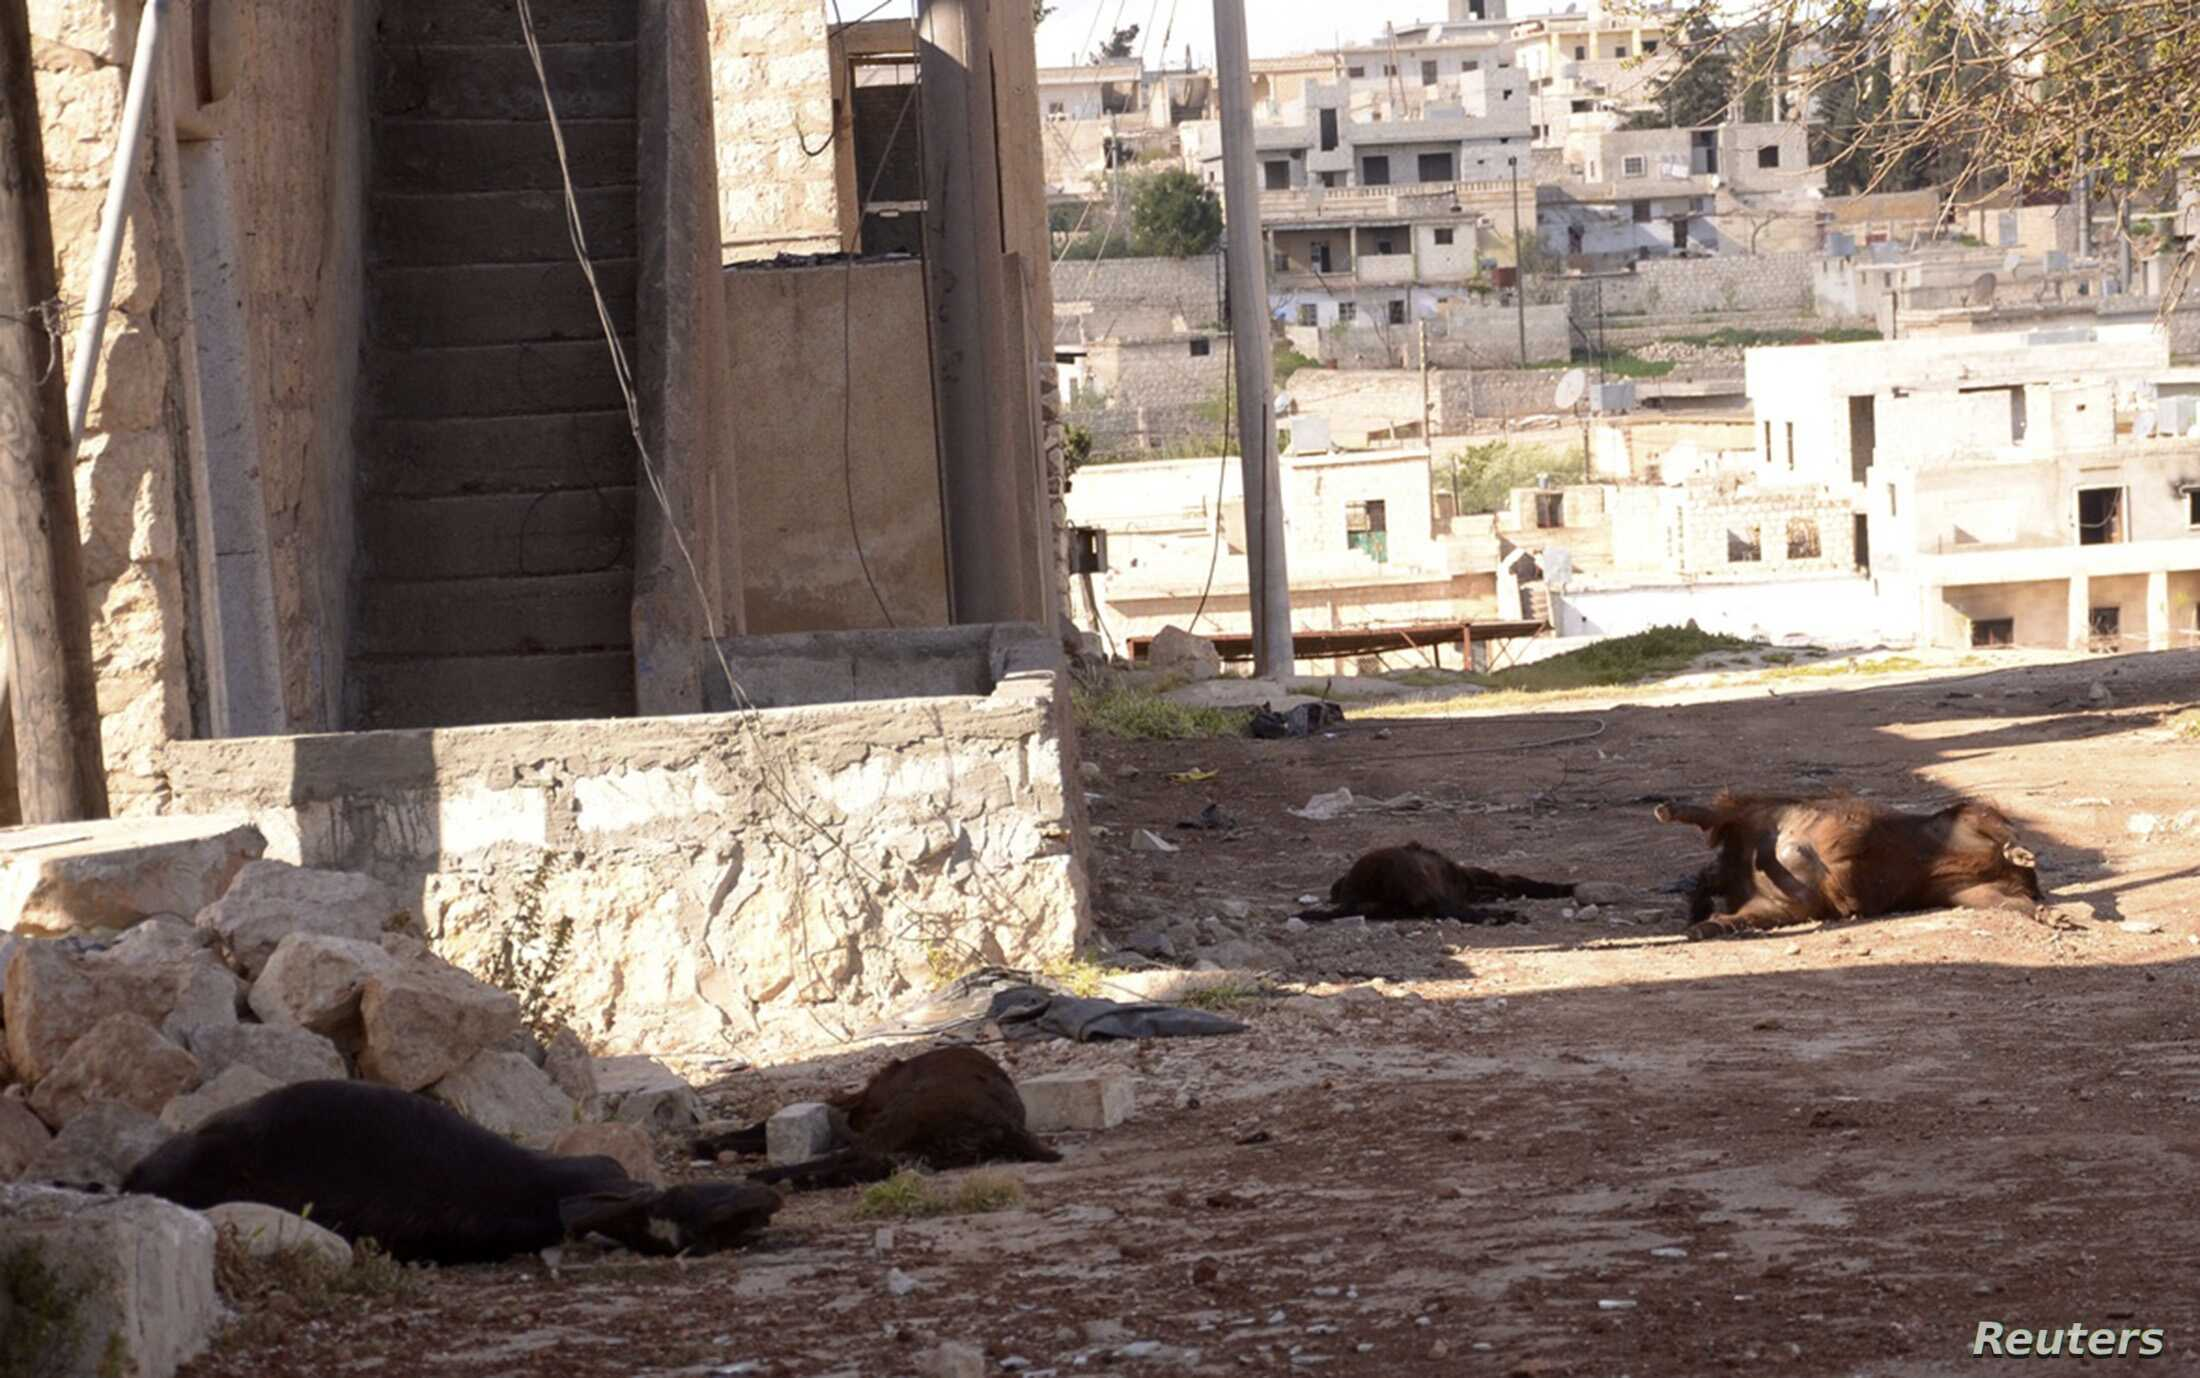 Animal carcasses in wake of what residents describe as a chemical weapons attack in Khan al-Assal area, near Aleppo, Syria, March 23, 2013.